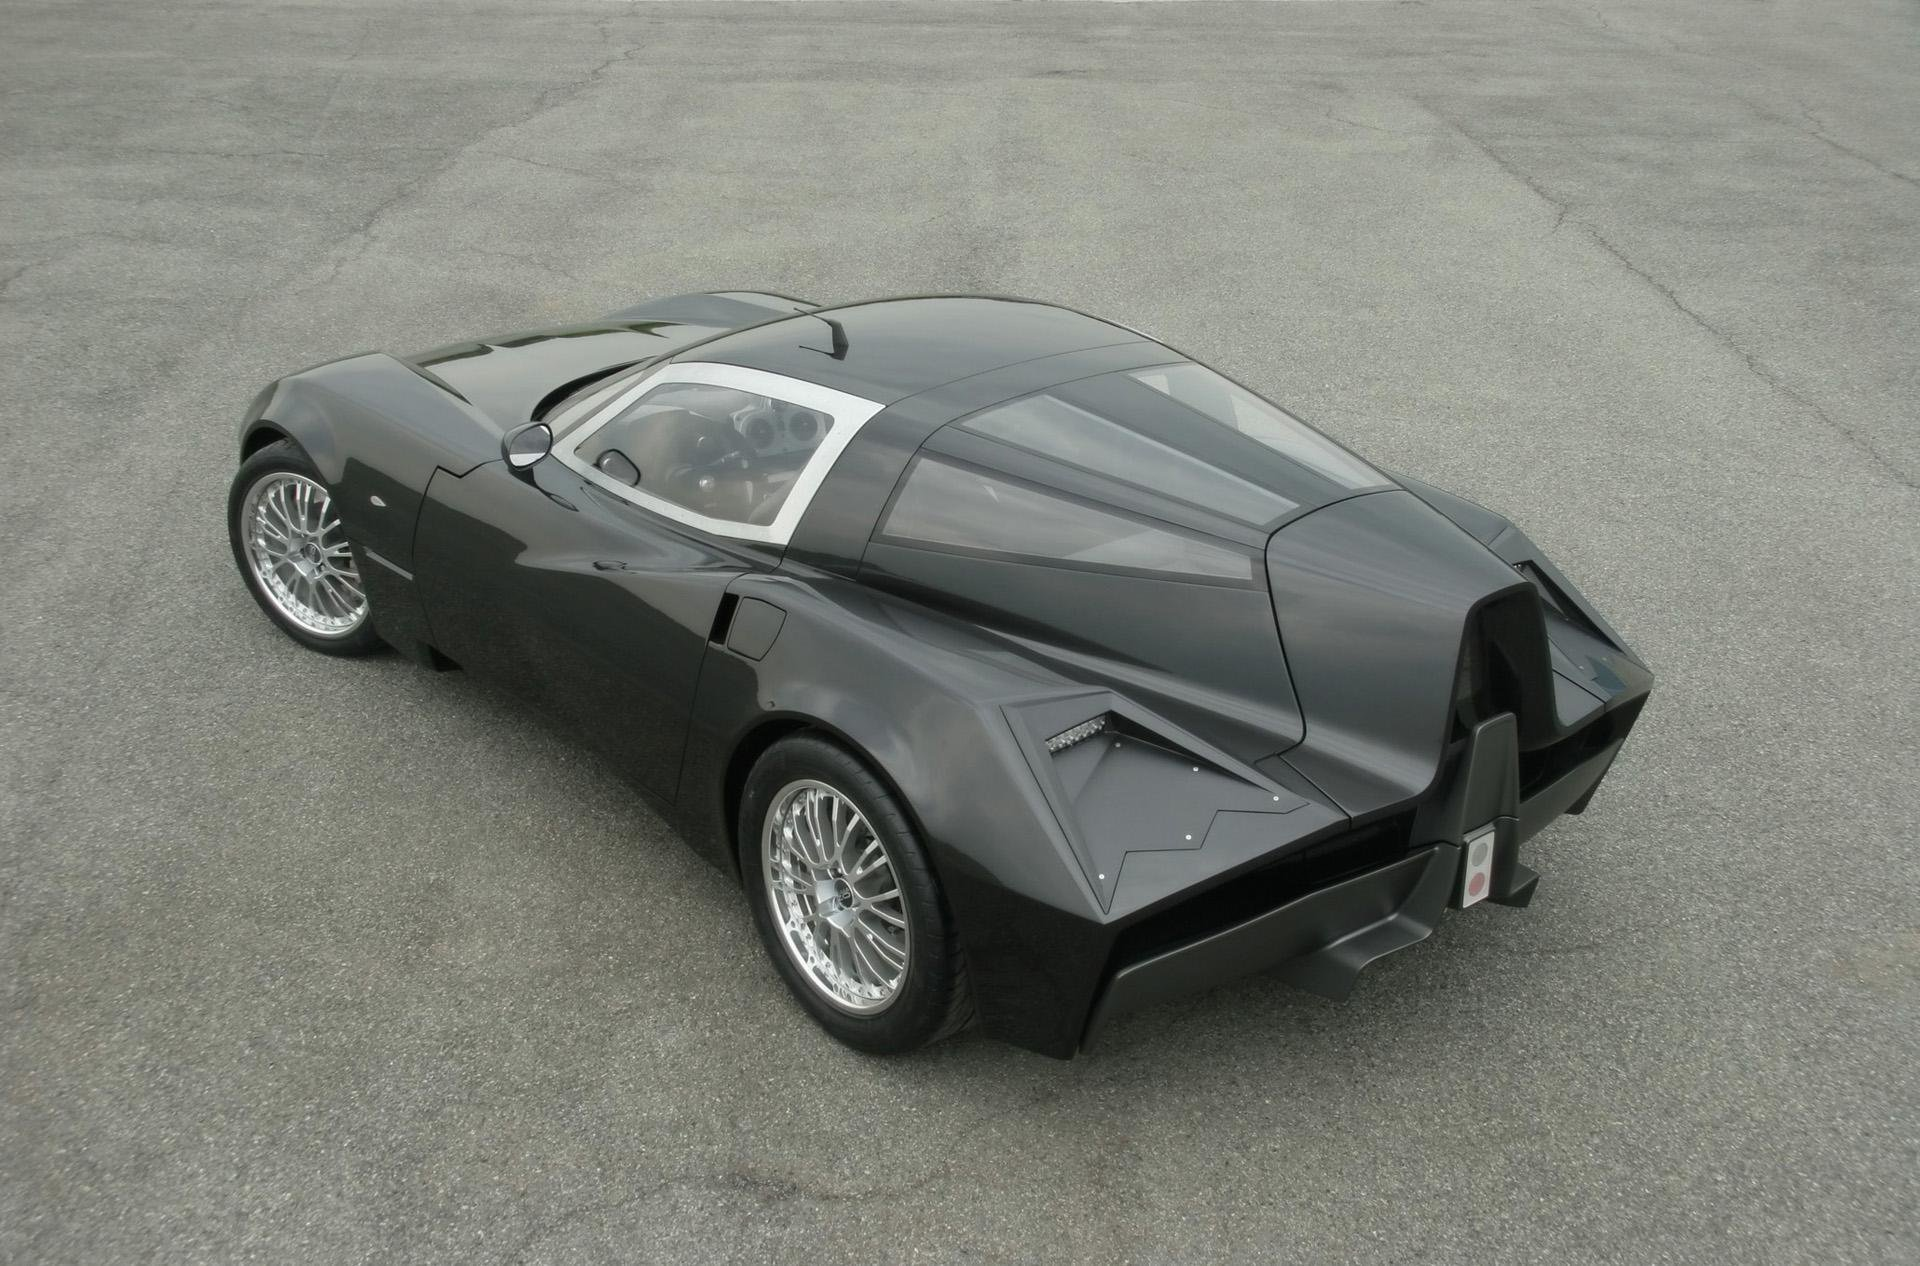 Latest 2008 Spada Codatronca Ts Concept Image Photo 23 Of 33 Free Download